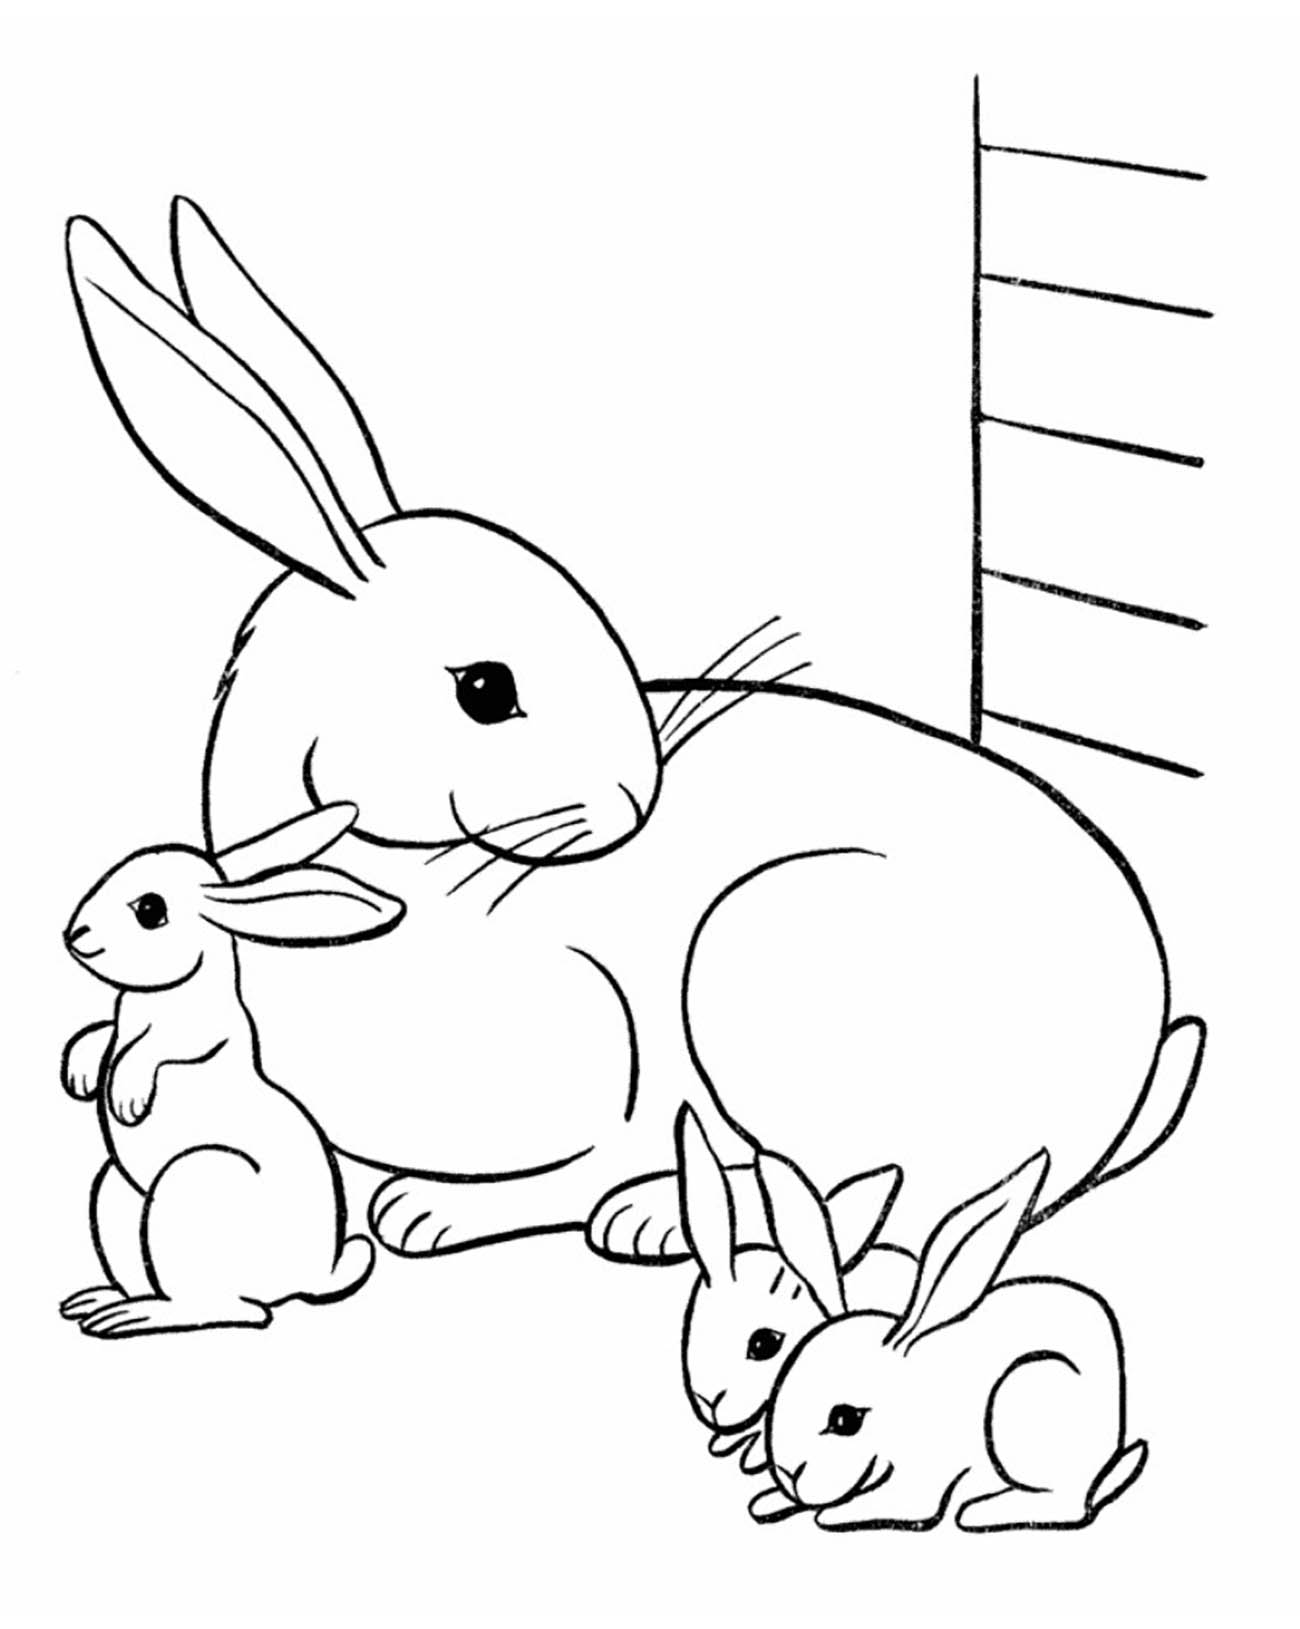 Incredible Rabbit coloring page to print and color for free